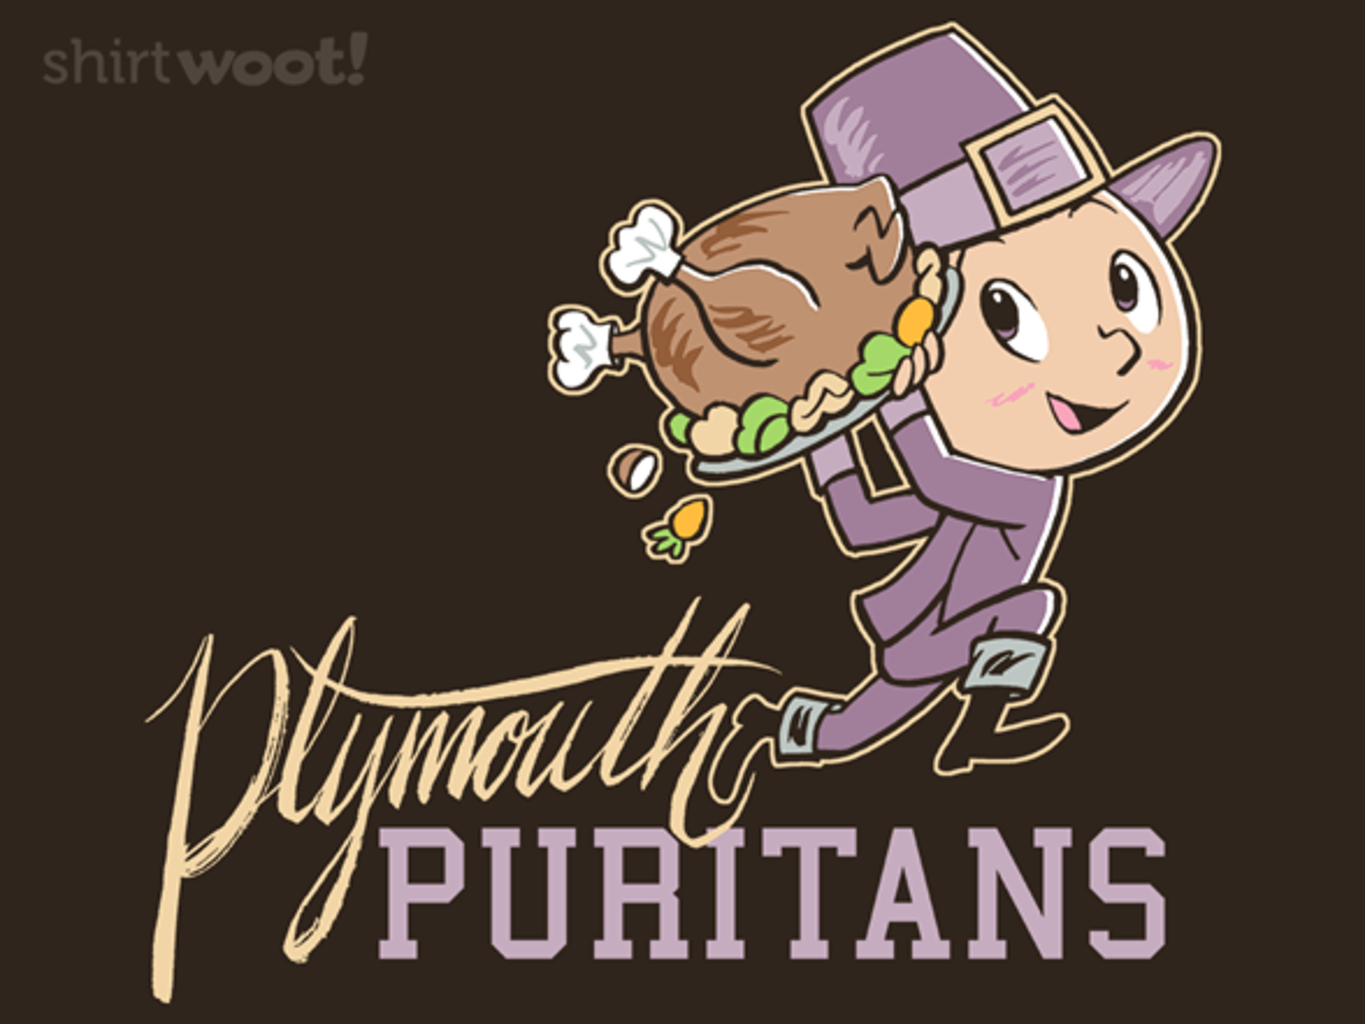 Woot!: Plymouth Puritans